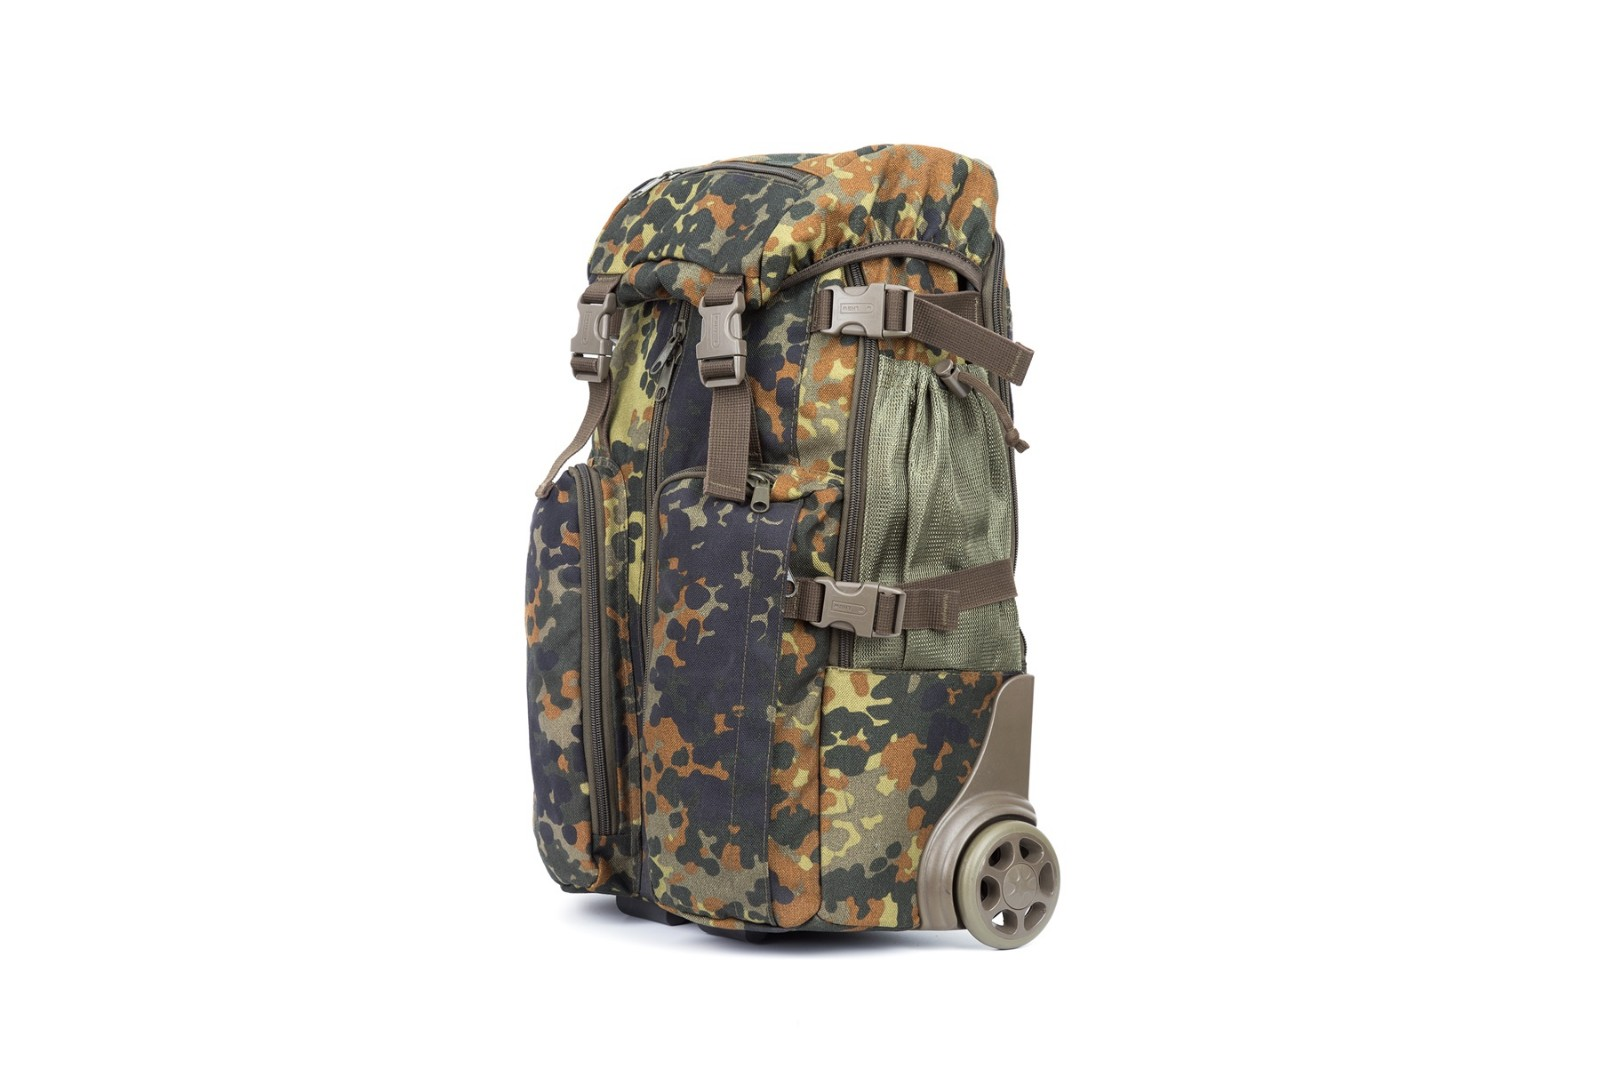 GF bags-Find Military Style Backpack Tactical Gear Backpack - GF Bags-5